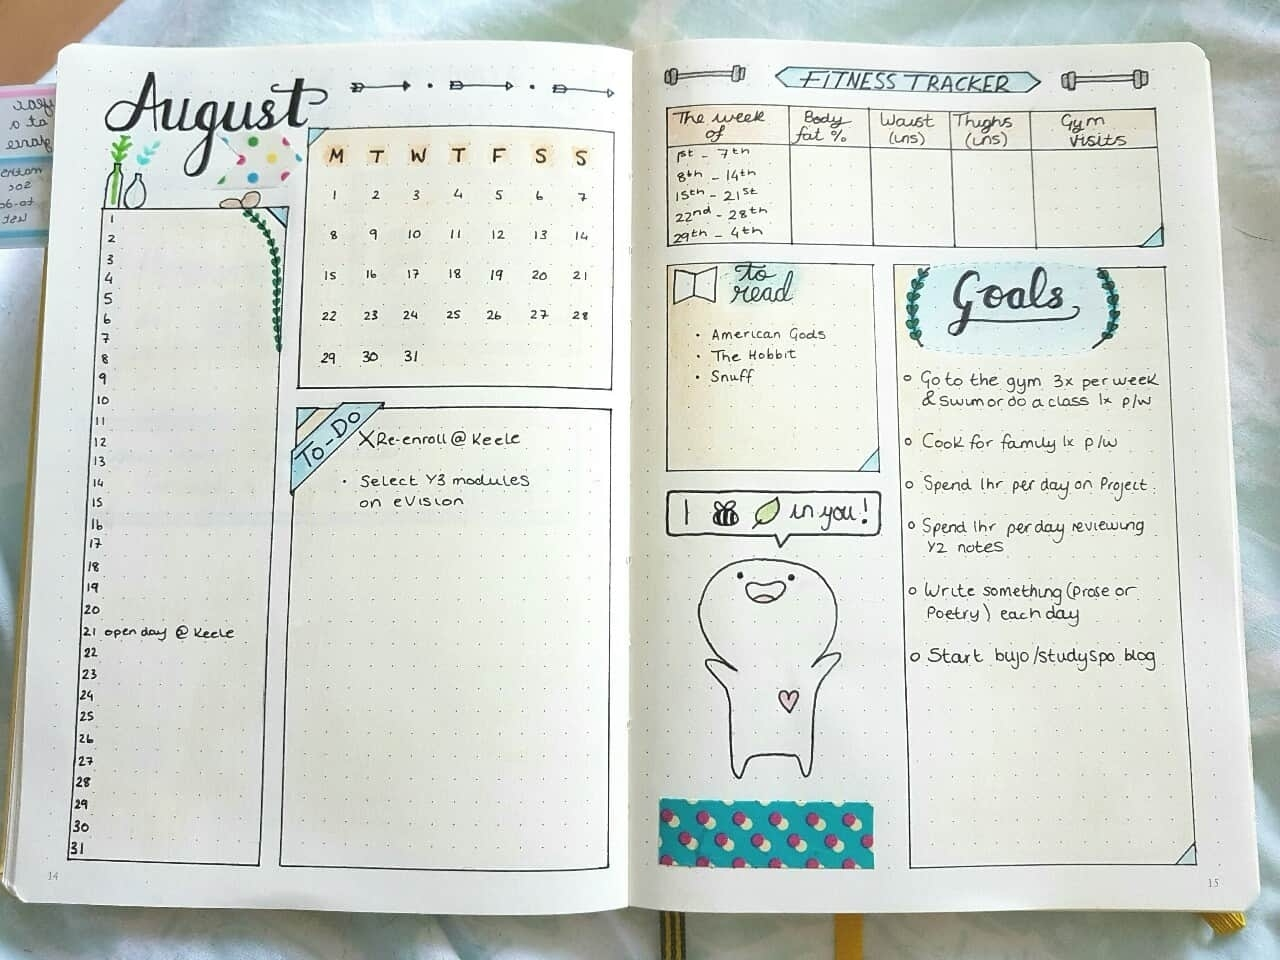 15 Monthly Spreads For Your Bullet Journal - Bullet Journal Addict Monthly Calendar Bullet Journal